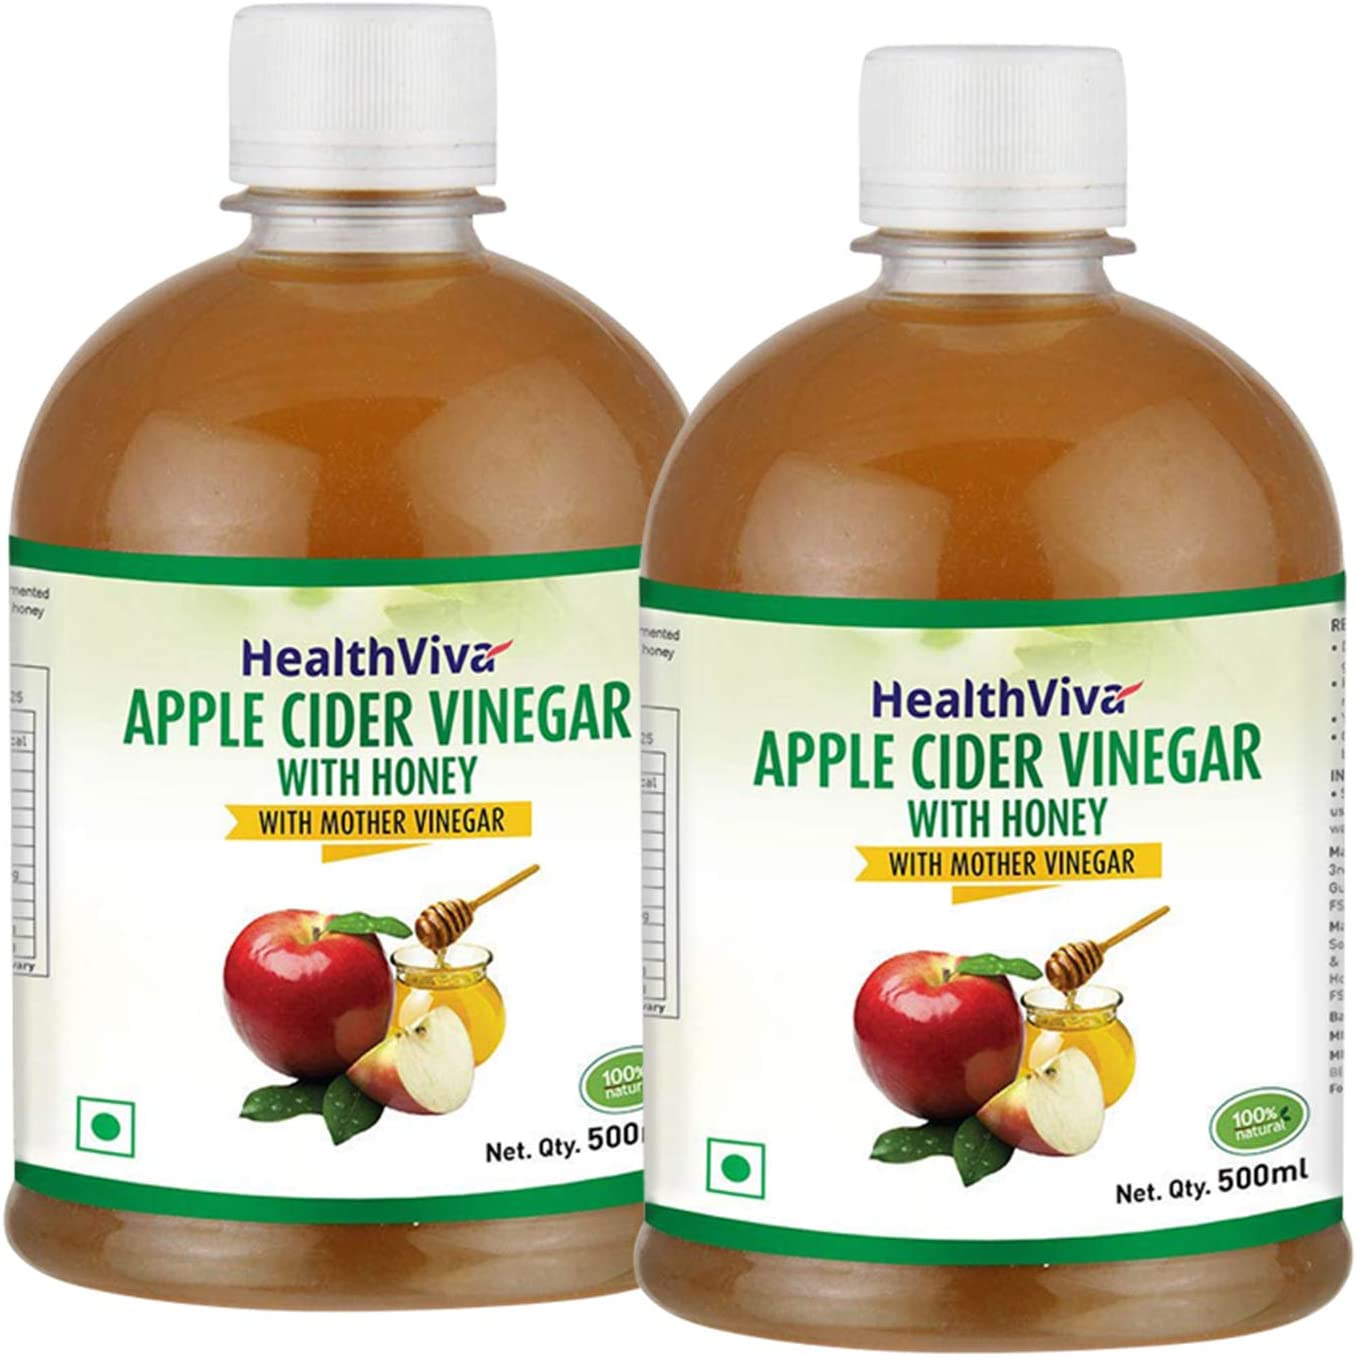 HealthViva Apple Cider Vinegar Combo